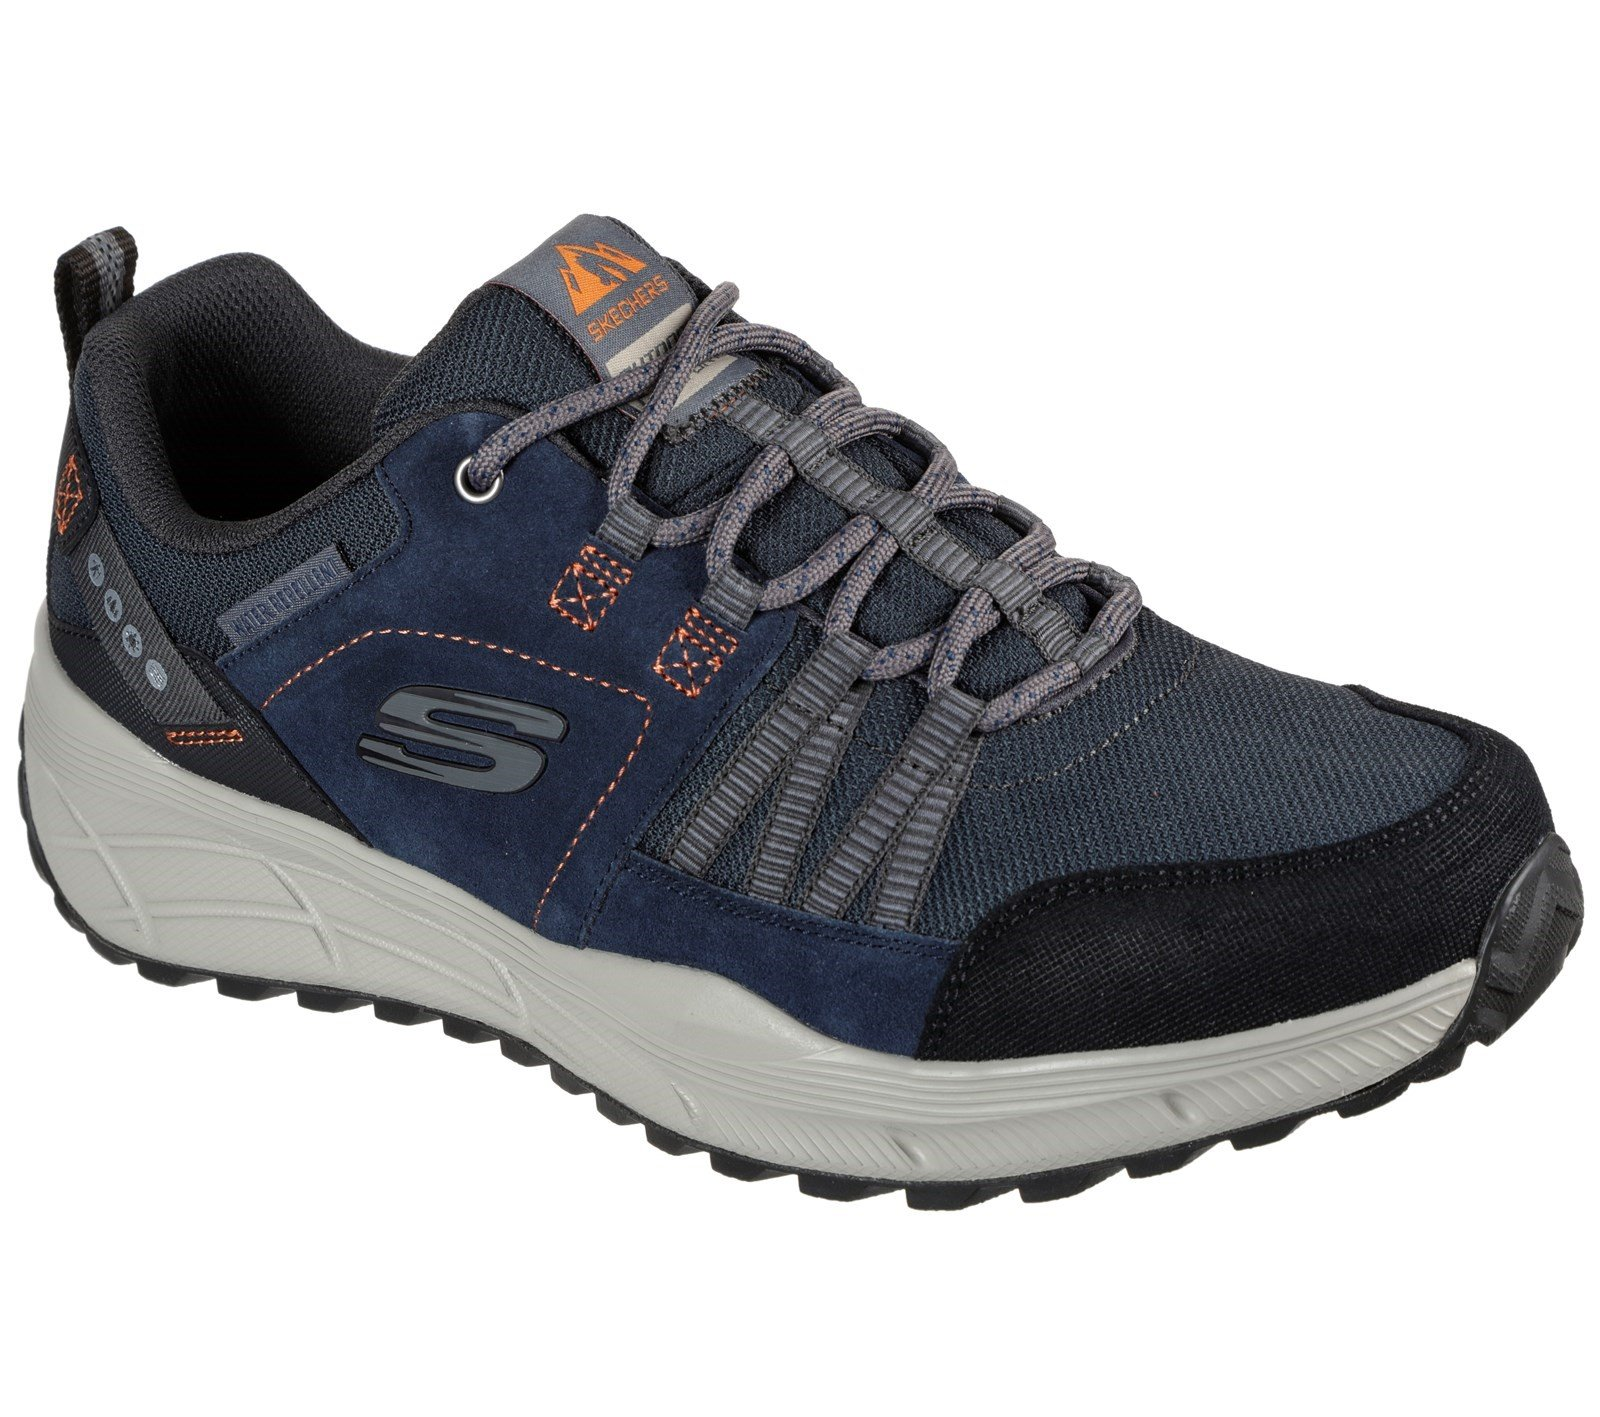 Skechers Men's Equalizer 4.0 Trail Sports Trainer Various Colours 31113 - Navy 6